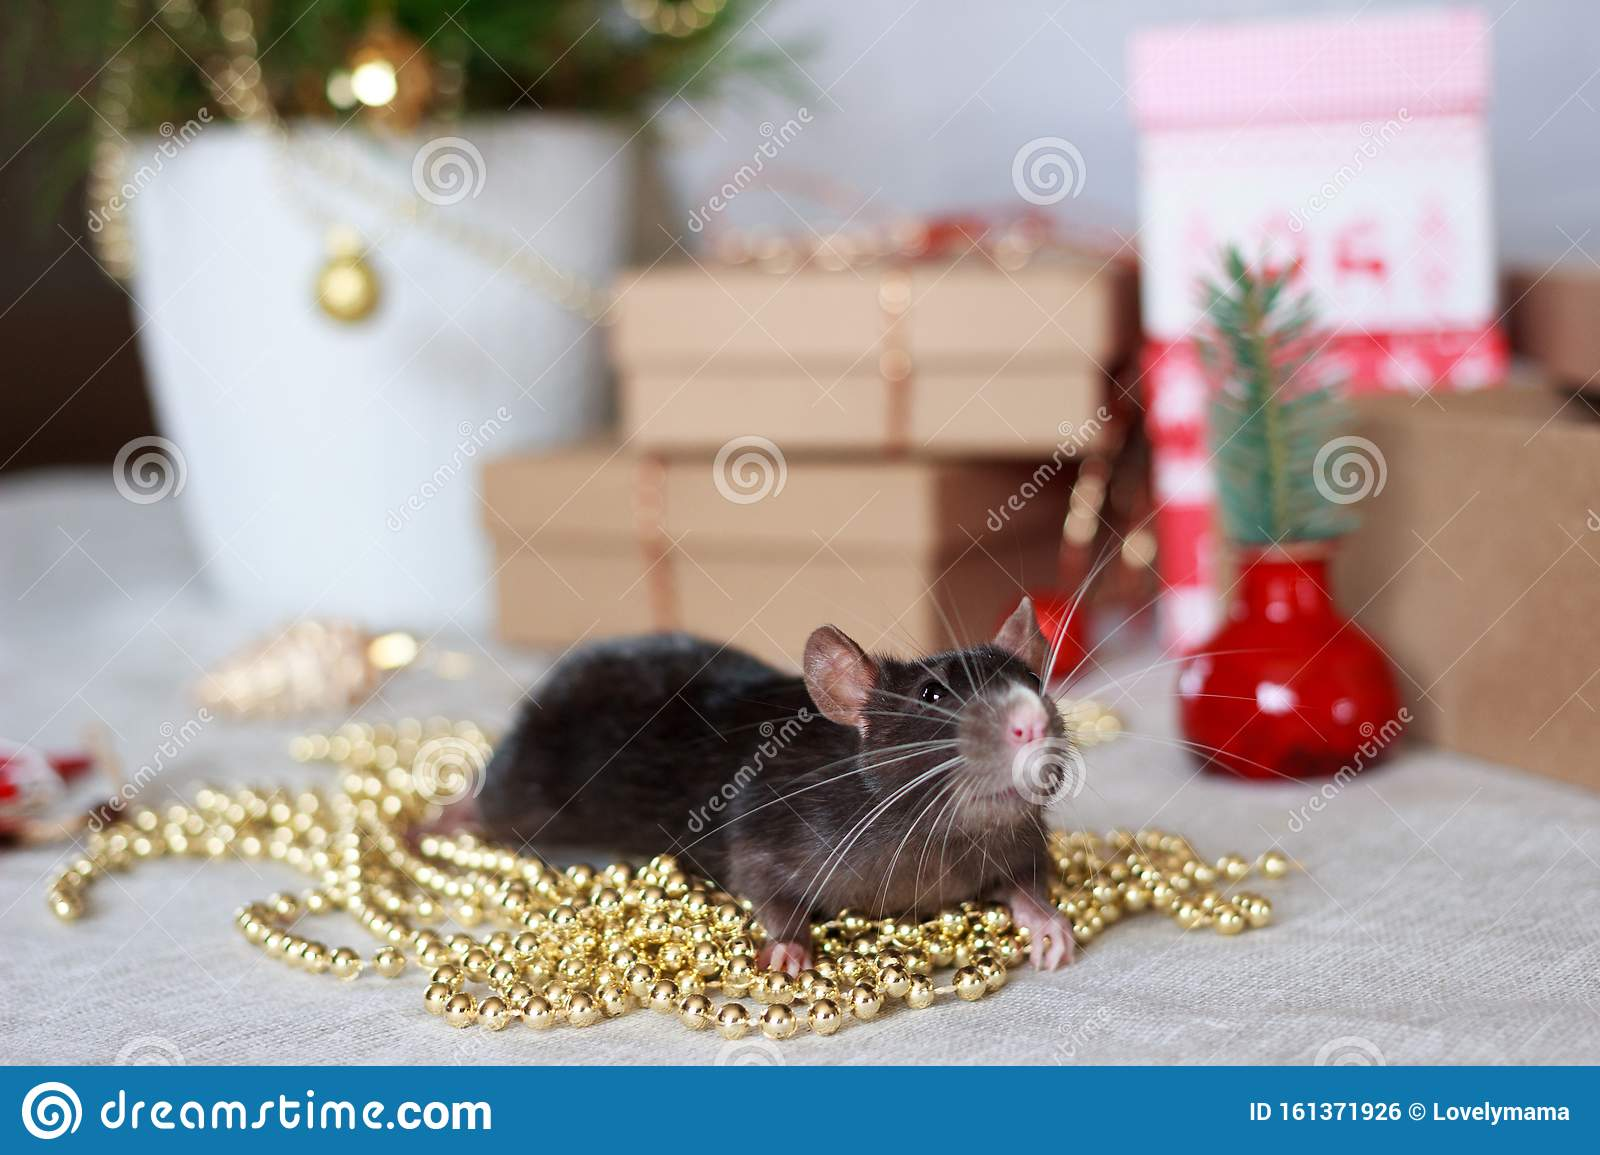 Chinese New Year Rat With Festive Decorations. Stock Photo ...